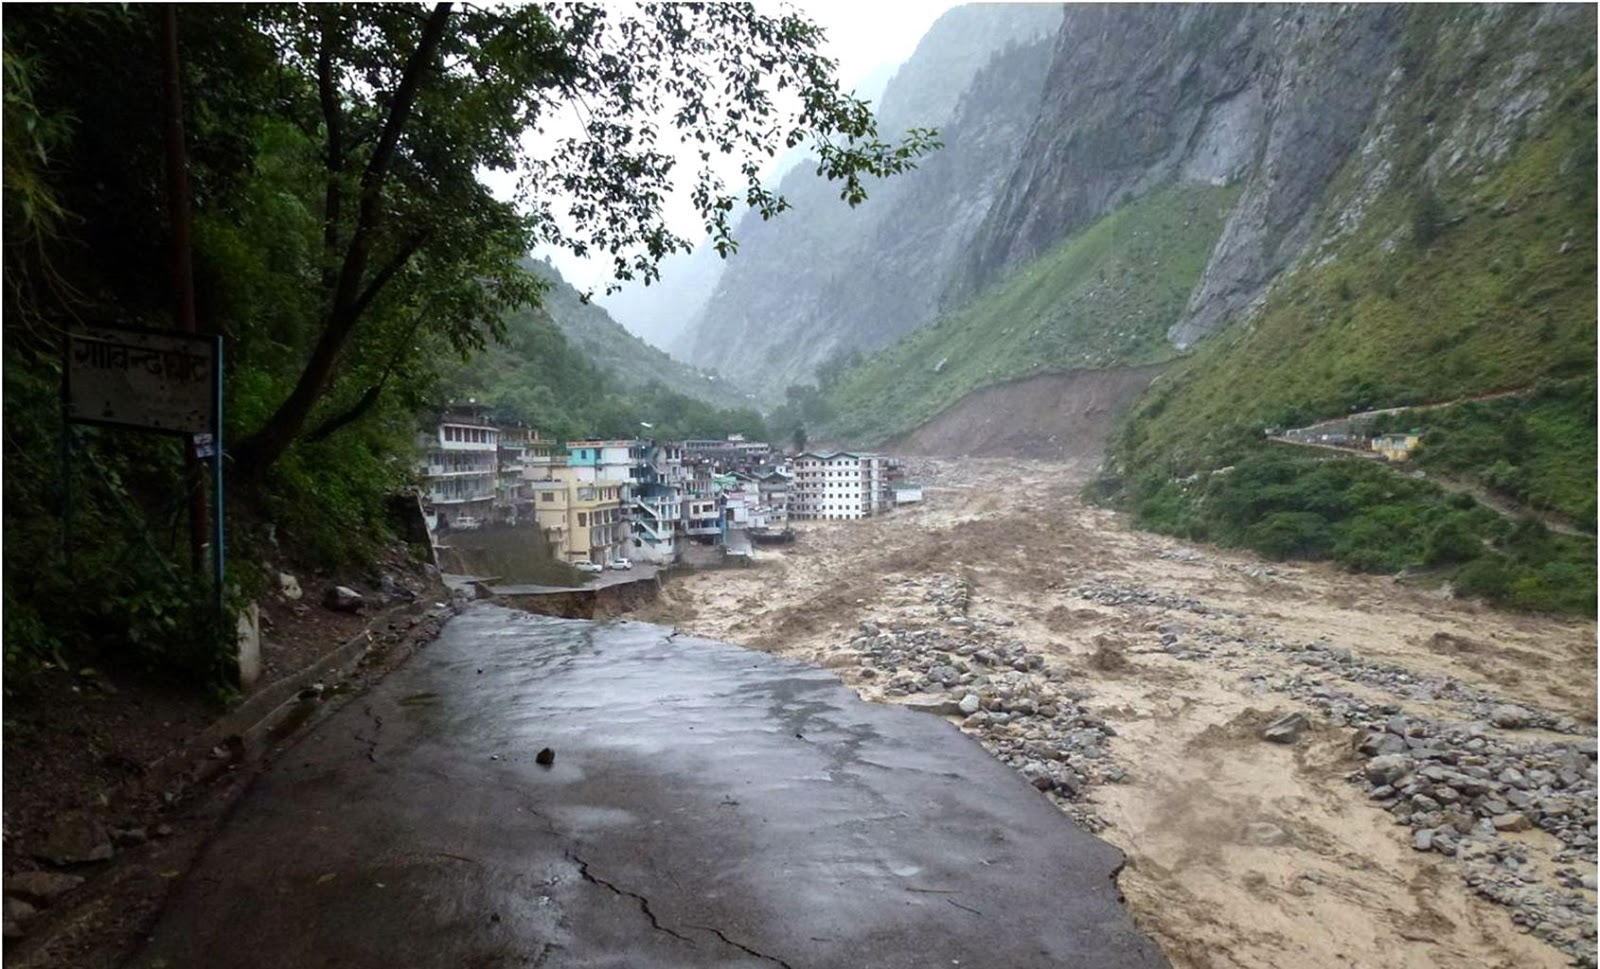 flood in uttarakhand Find uttarakhand floods latest news, videos & pictures on uttarakhand floods  and see latest updates, news, information from ndtvcom explore more on.